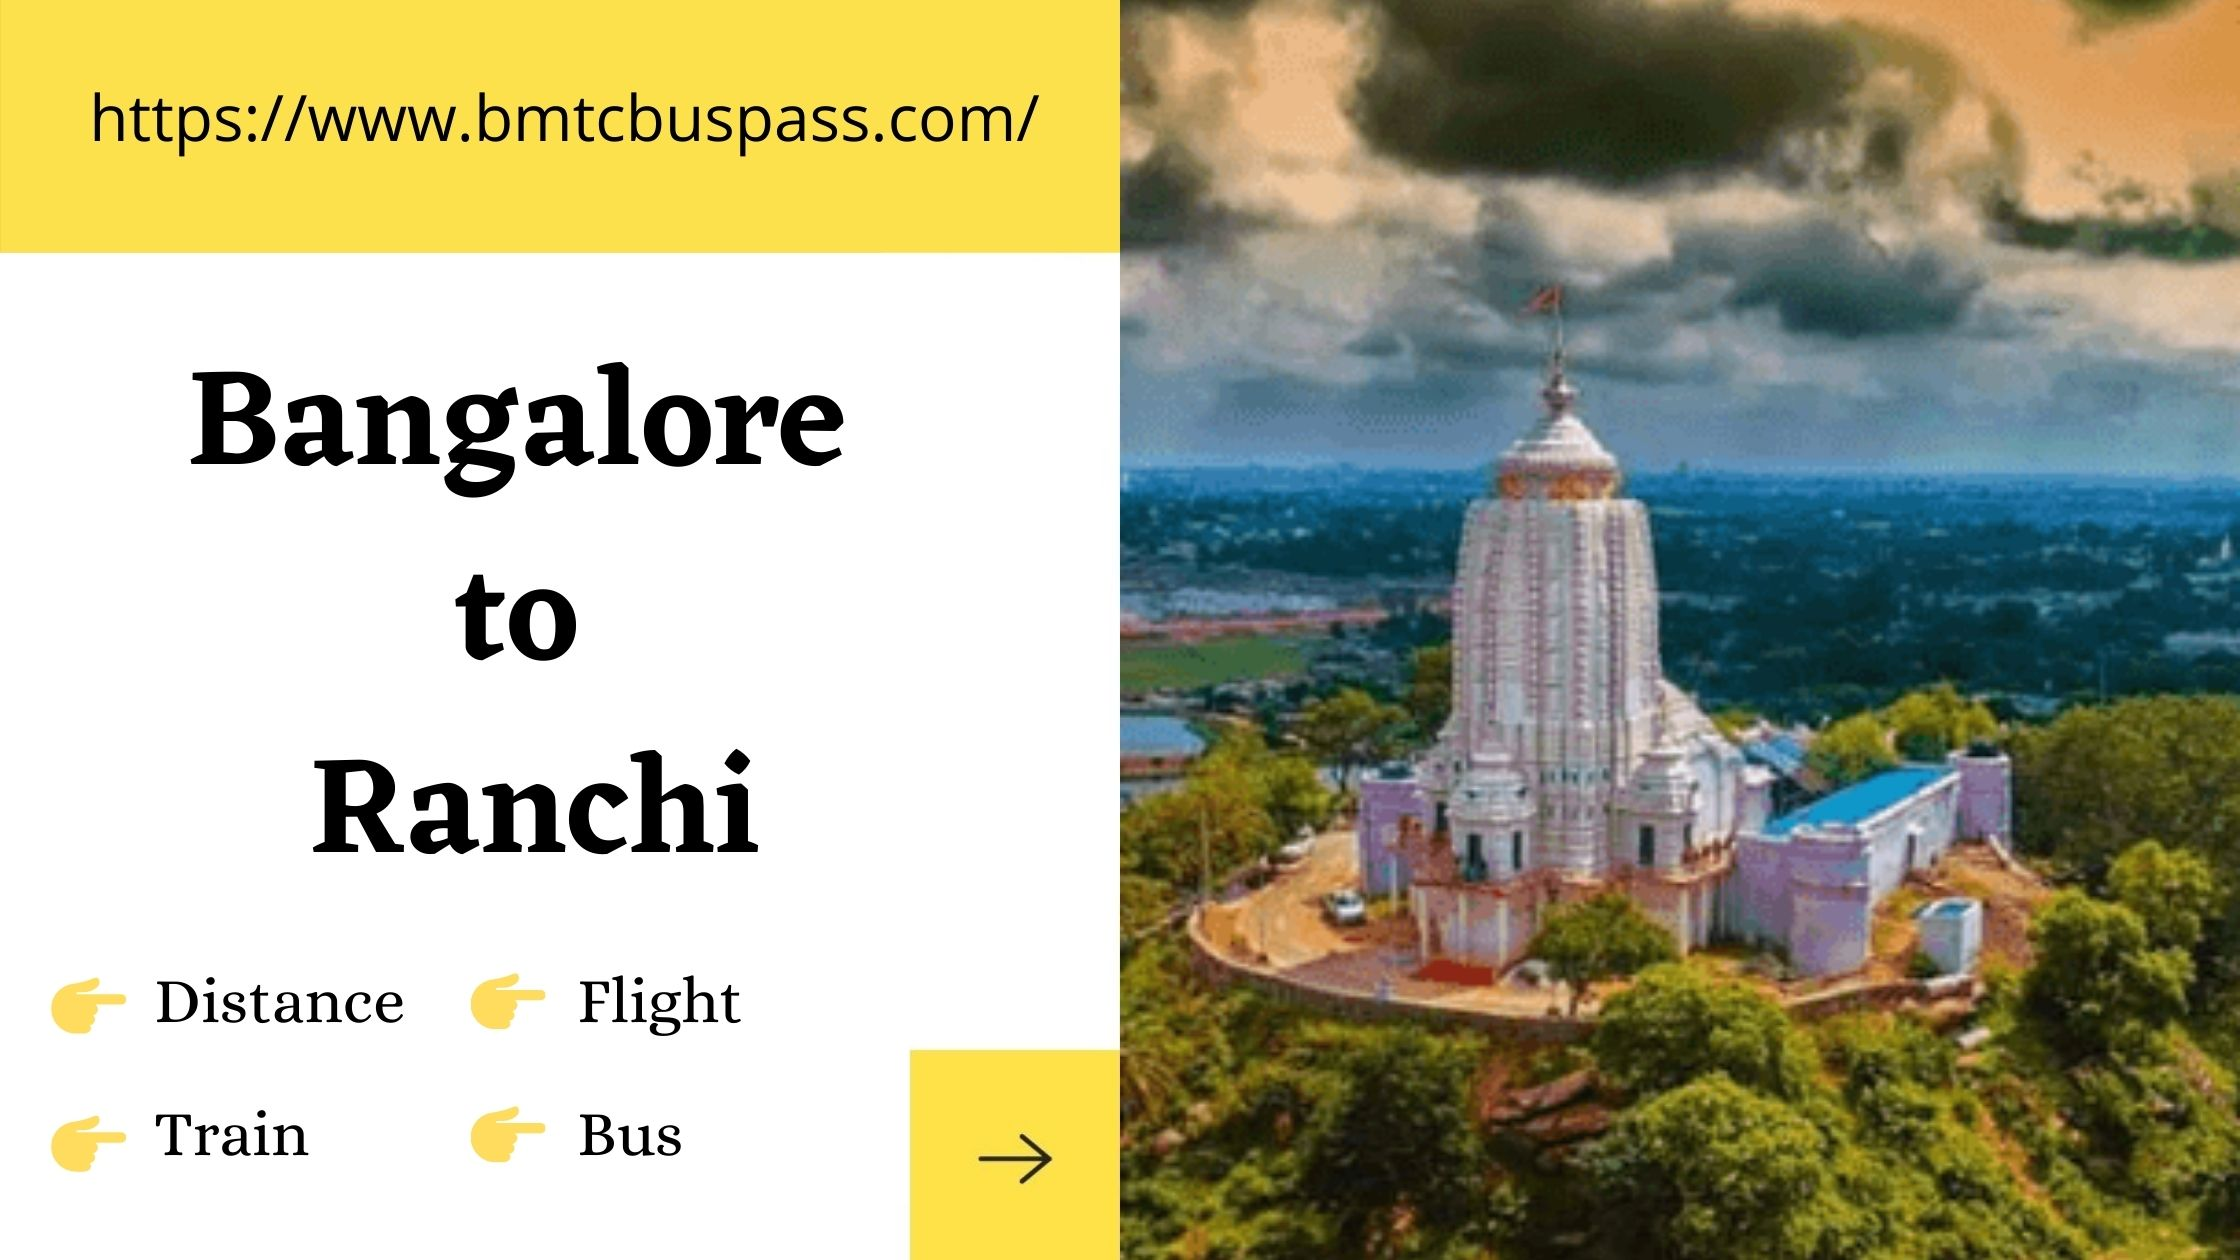 Bangalore to Ranchi